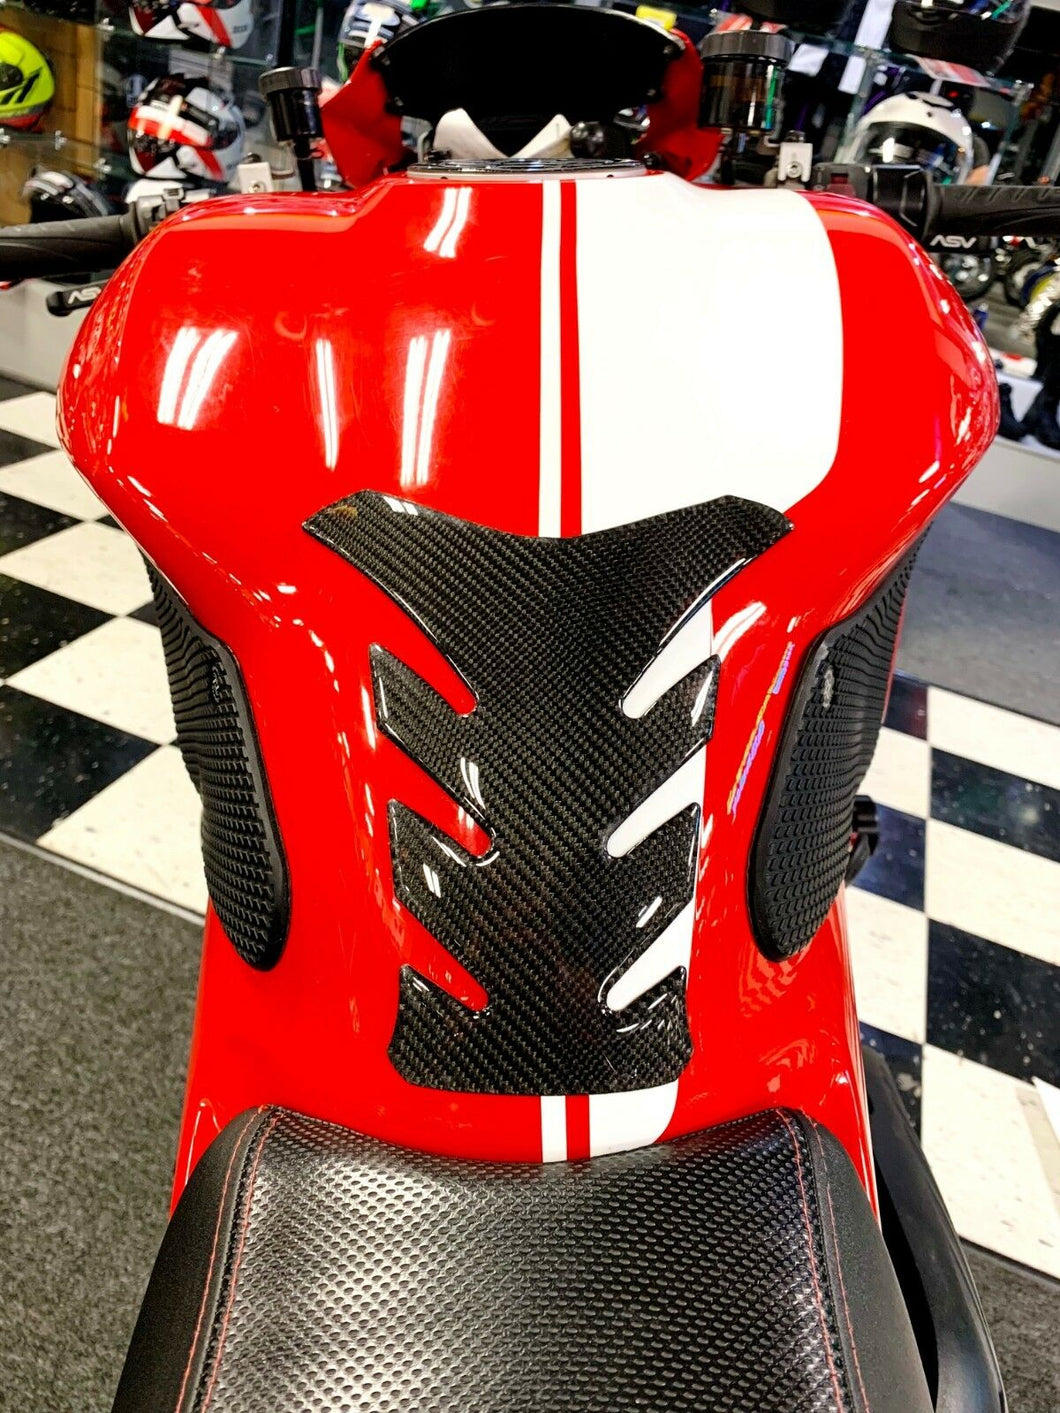 Fit Ducati Monster 1200 Real Carbon Fiber tank Pad Protector sticker trim kit